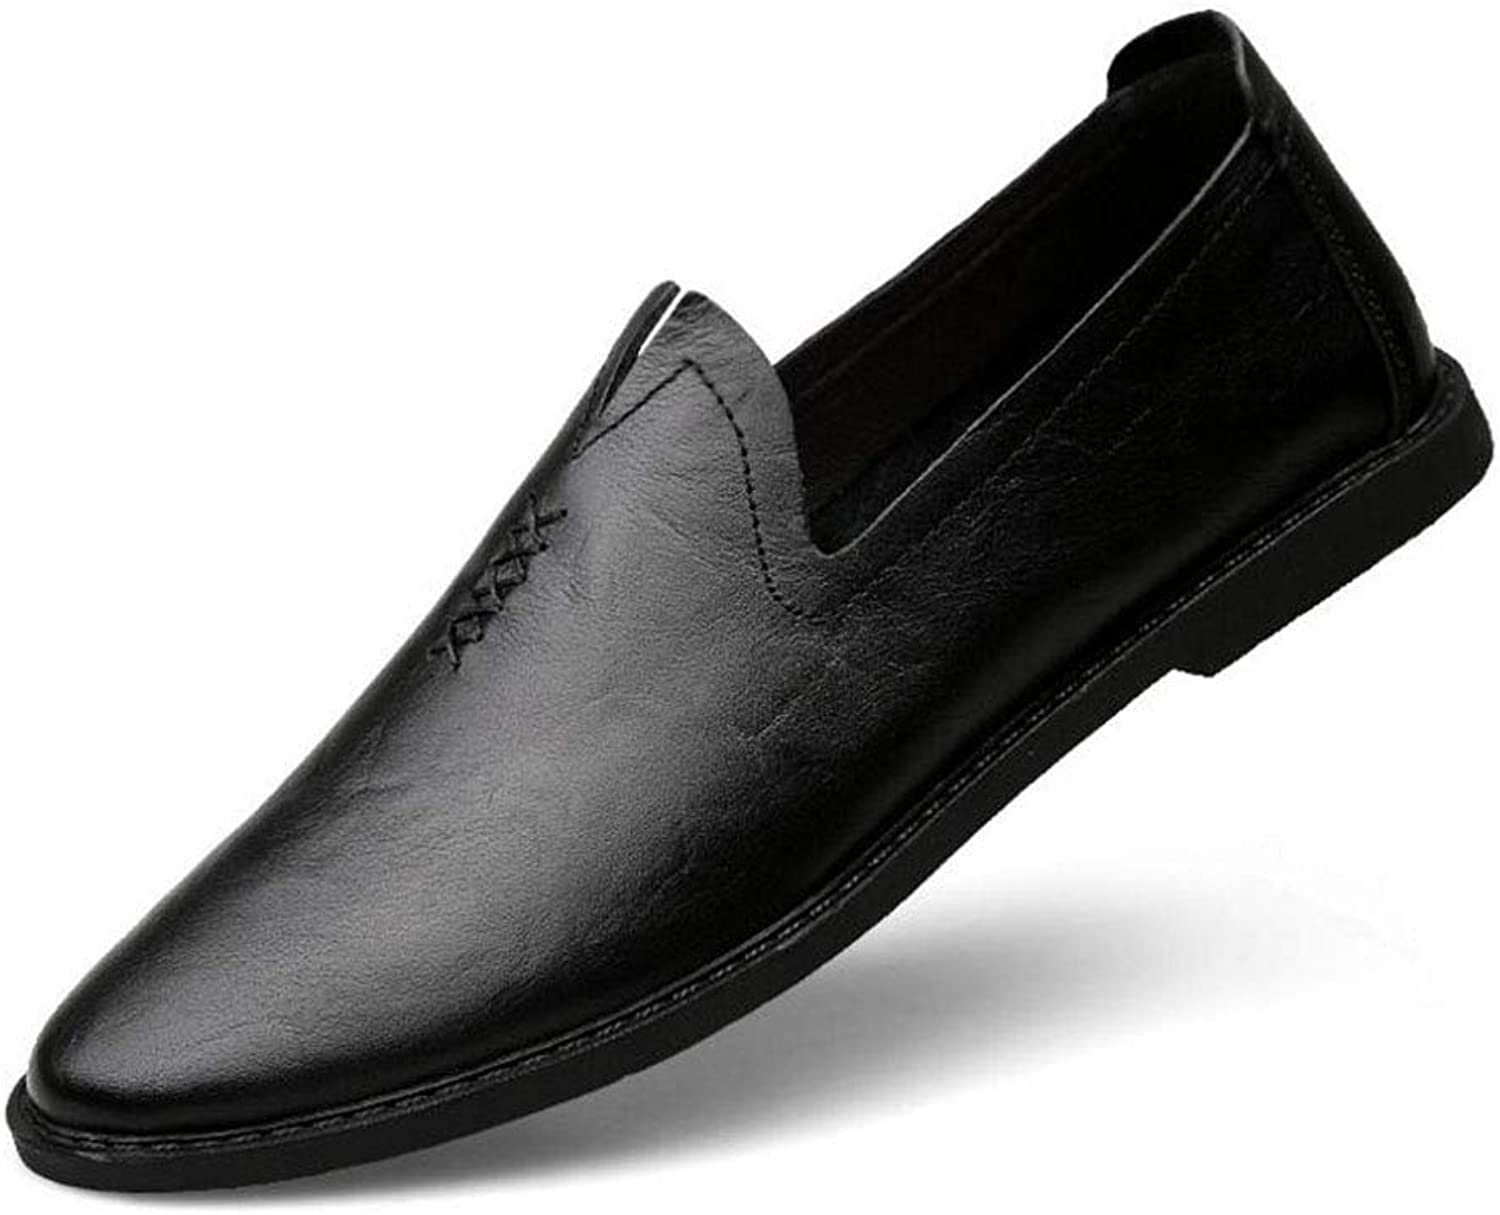 MUMUWU Formal Mens Business Oxfords PU Leather Block Heel Soft Sole Flats Breathable